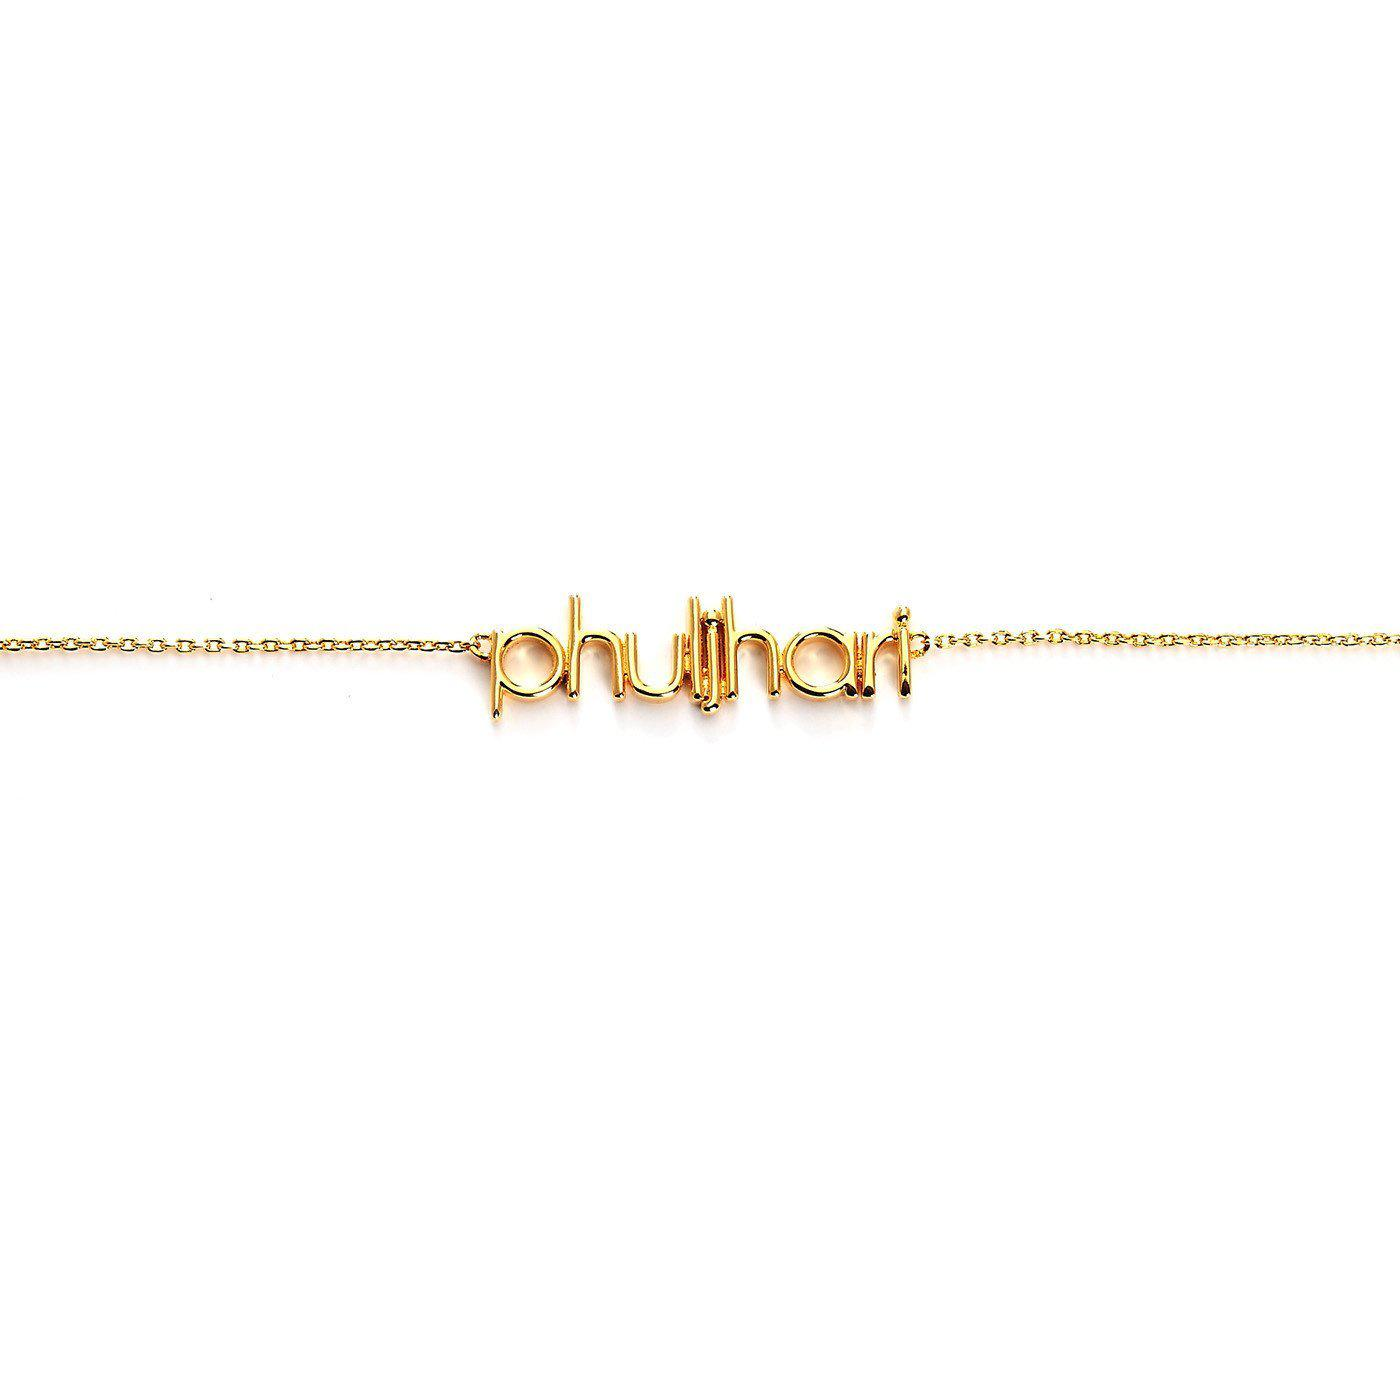 Nickname Phuljhari Necklace-Blinglane